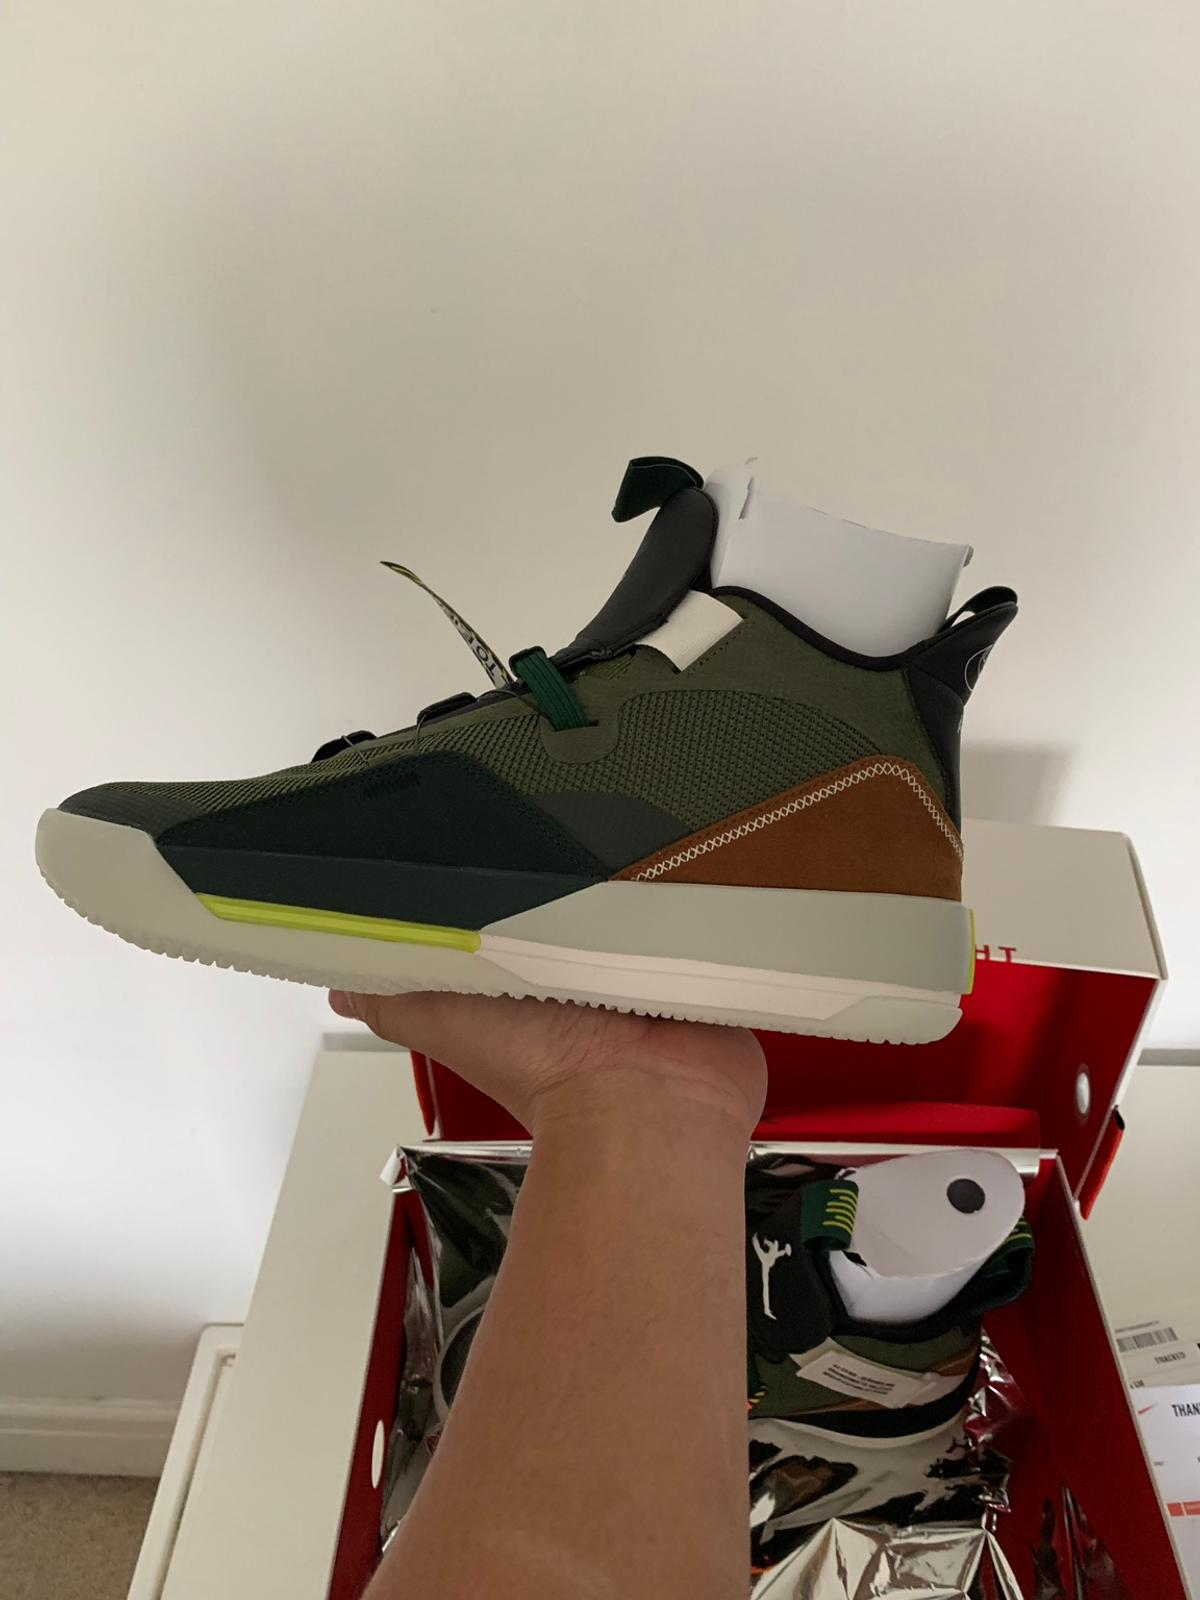 Travis Scott Air Jordan 33 XXXIII UK 9 in TW15 Spelthorne